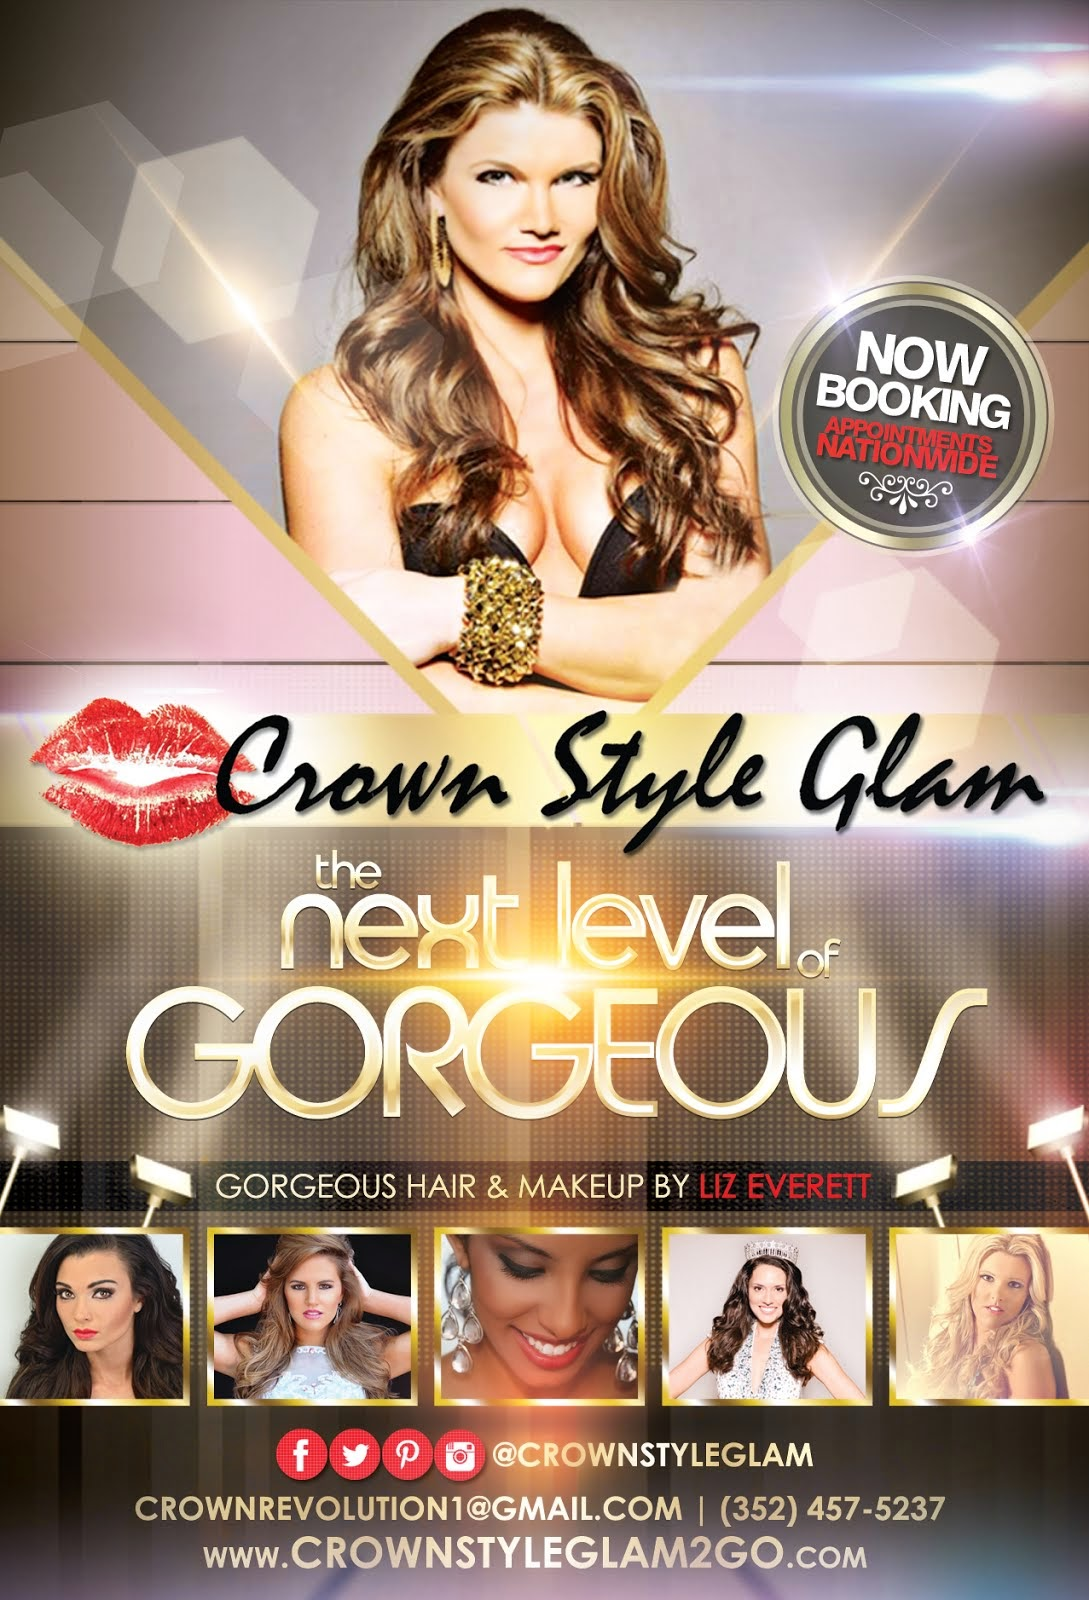 Crown Style Glam- National Sponsor